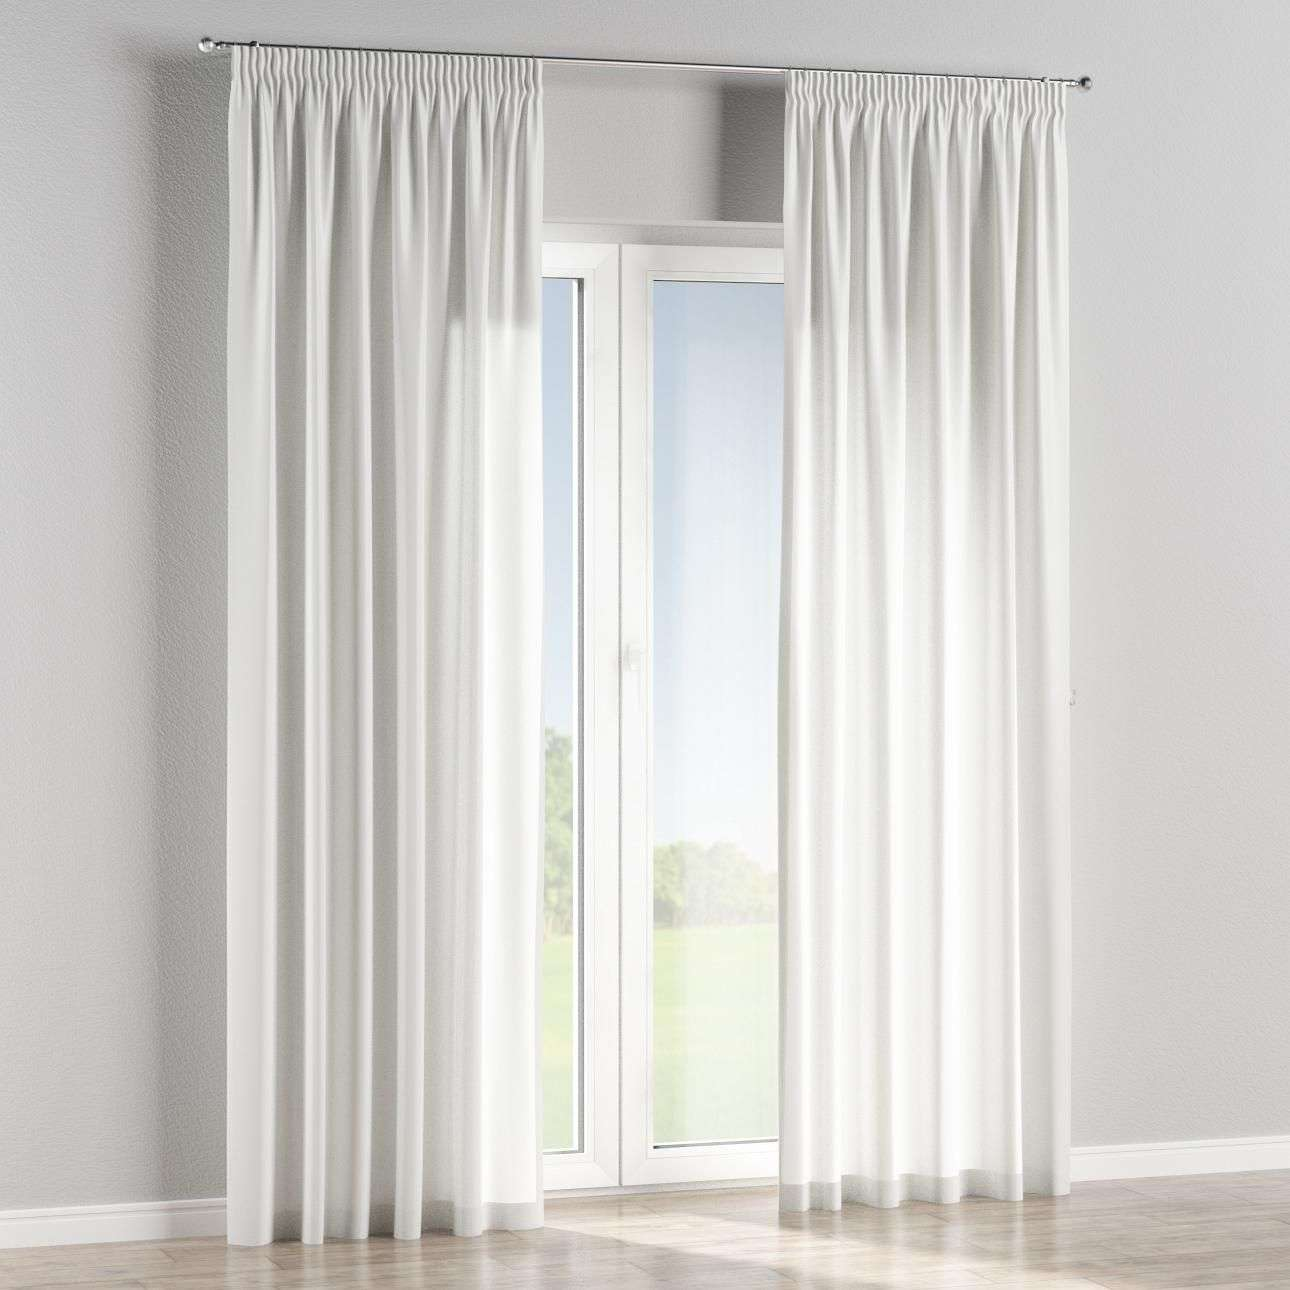 Pencil pleat lined curtains in collection SALE, fabric: 138-17